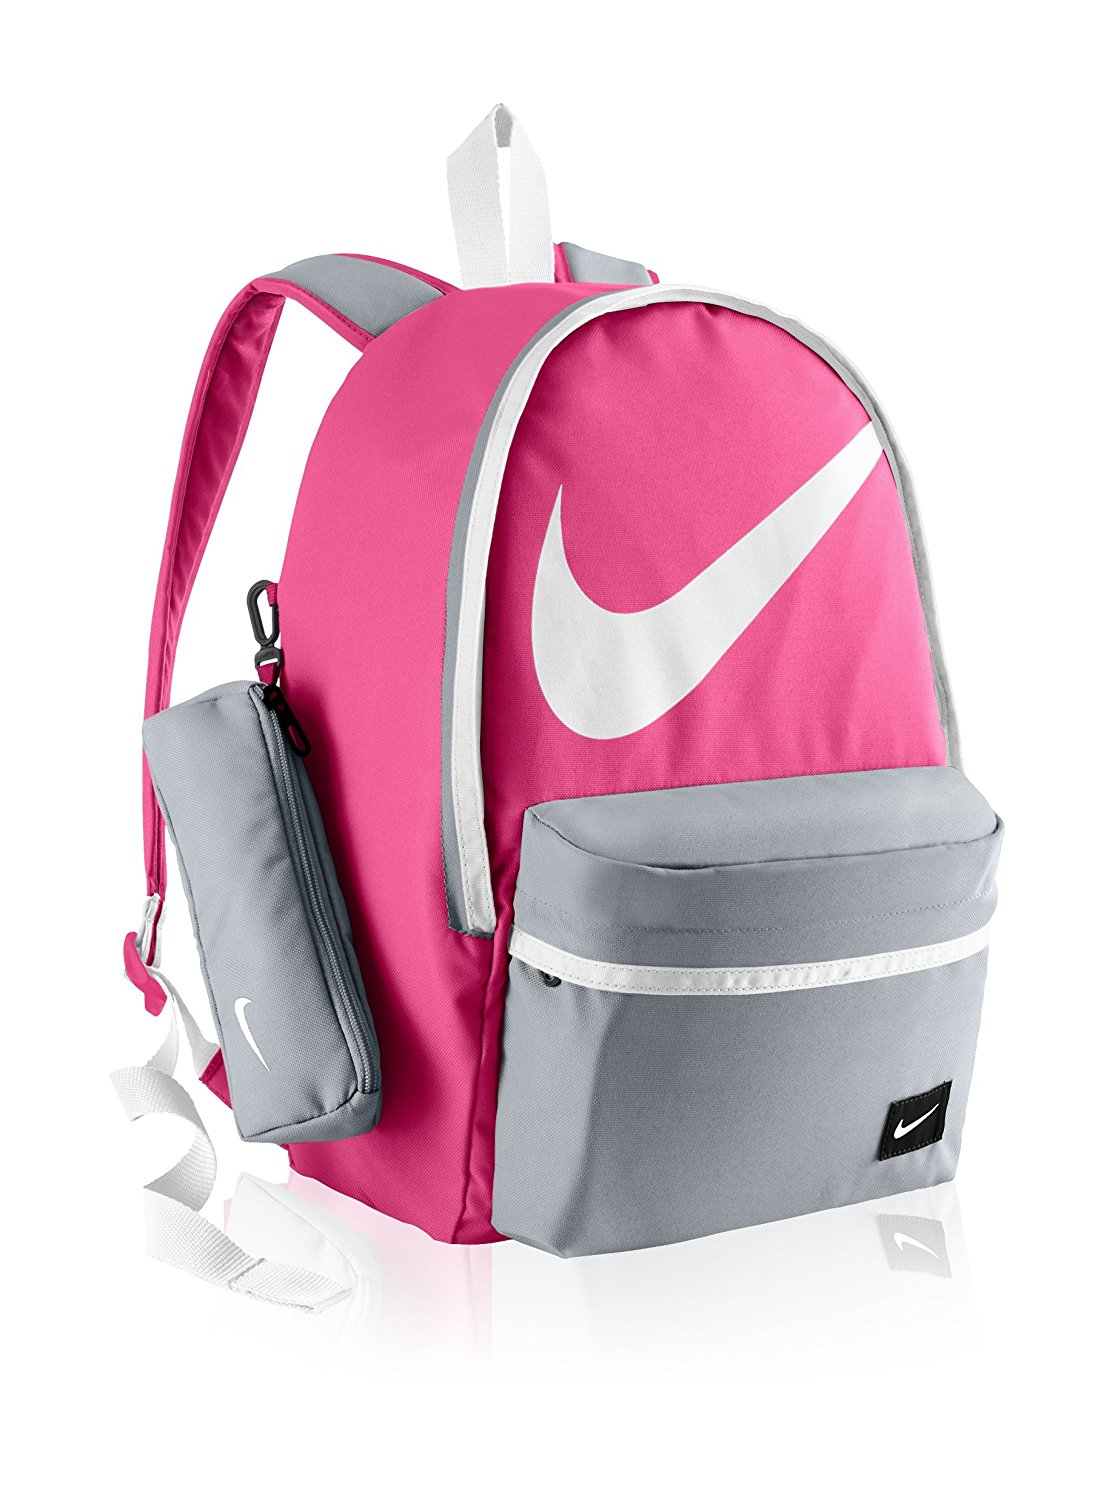 5f1cd72e3e09 Buy Nike Kids Halfday Back To School Backpack in Cheap Price on ...